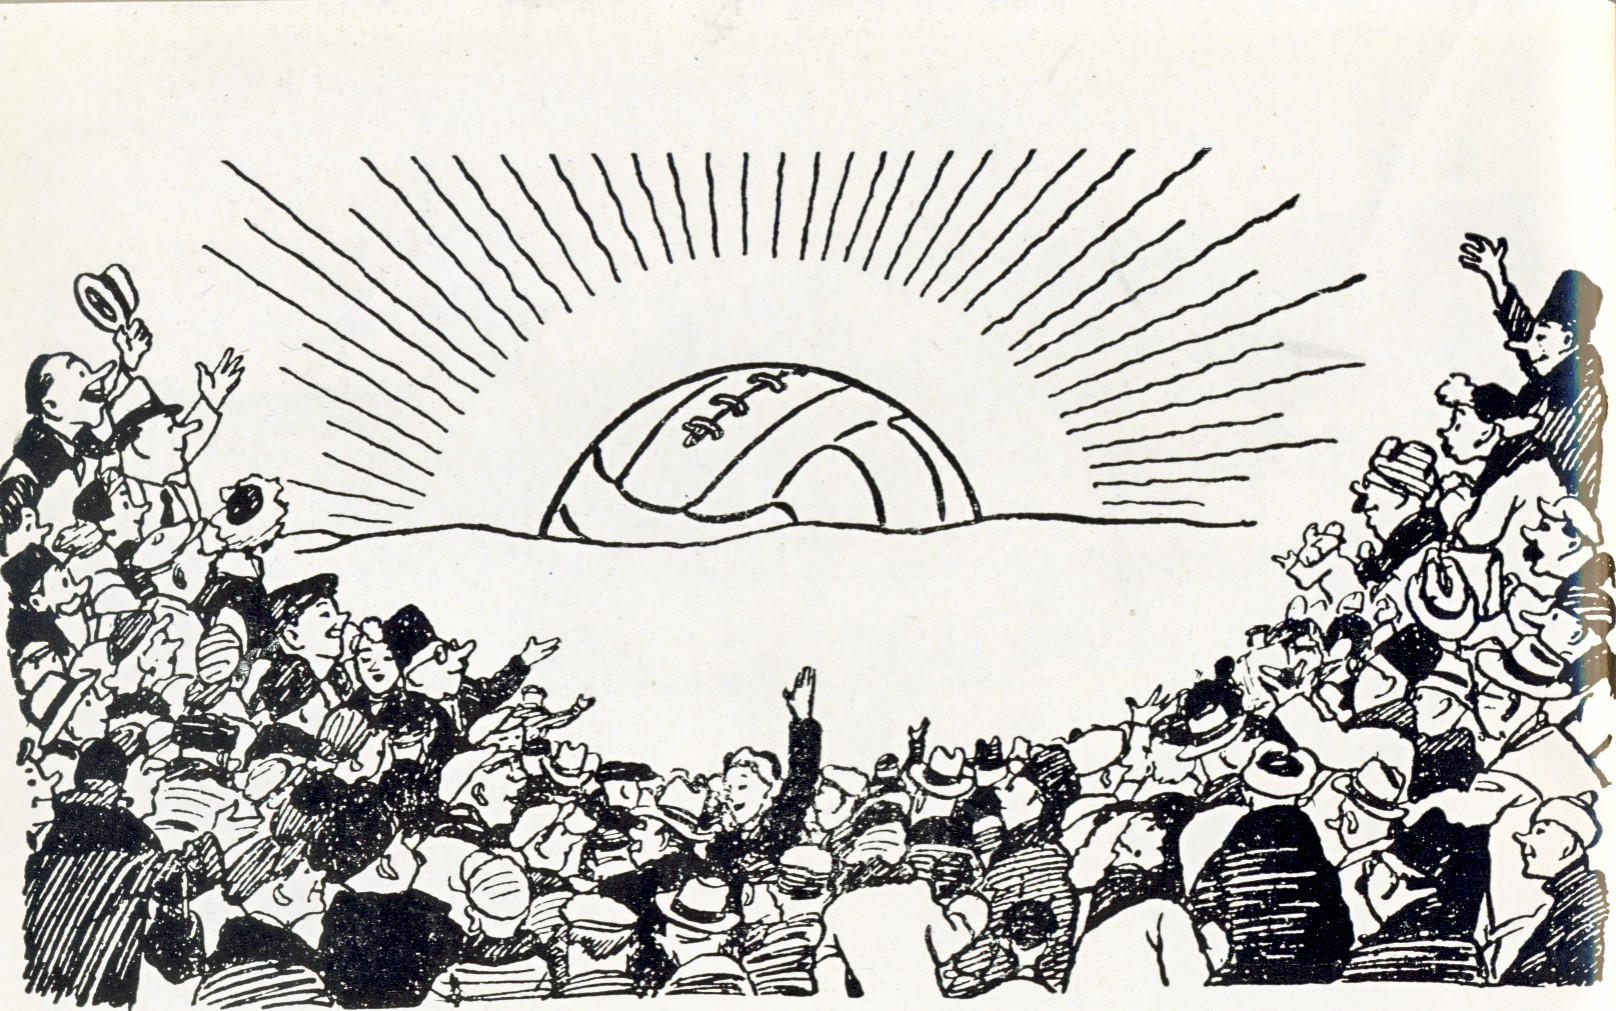 A Soviet cartoon depicting the growing rise of football as a national treasure